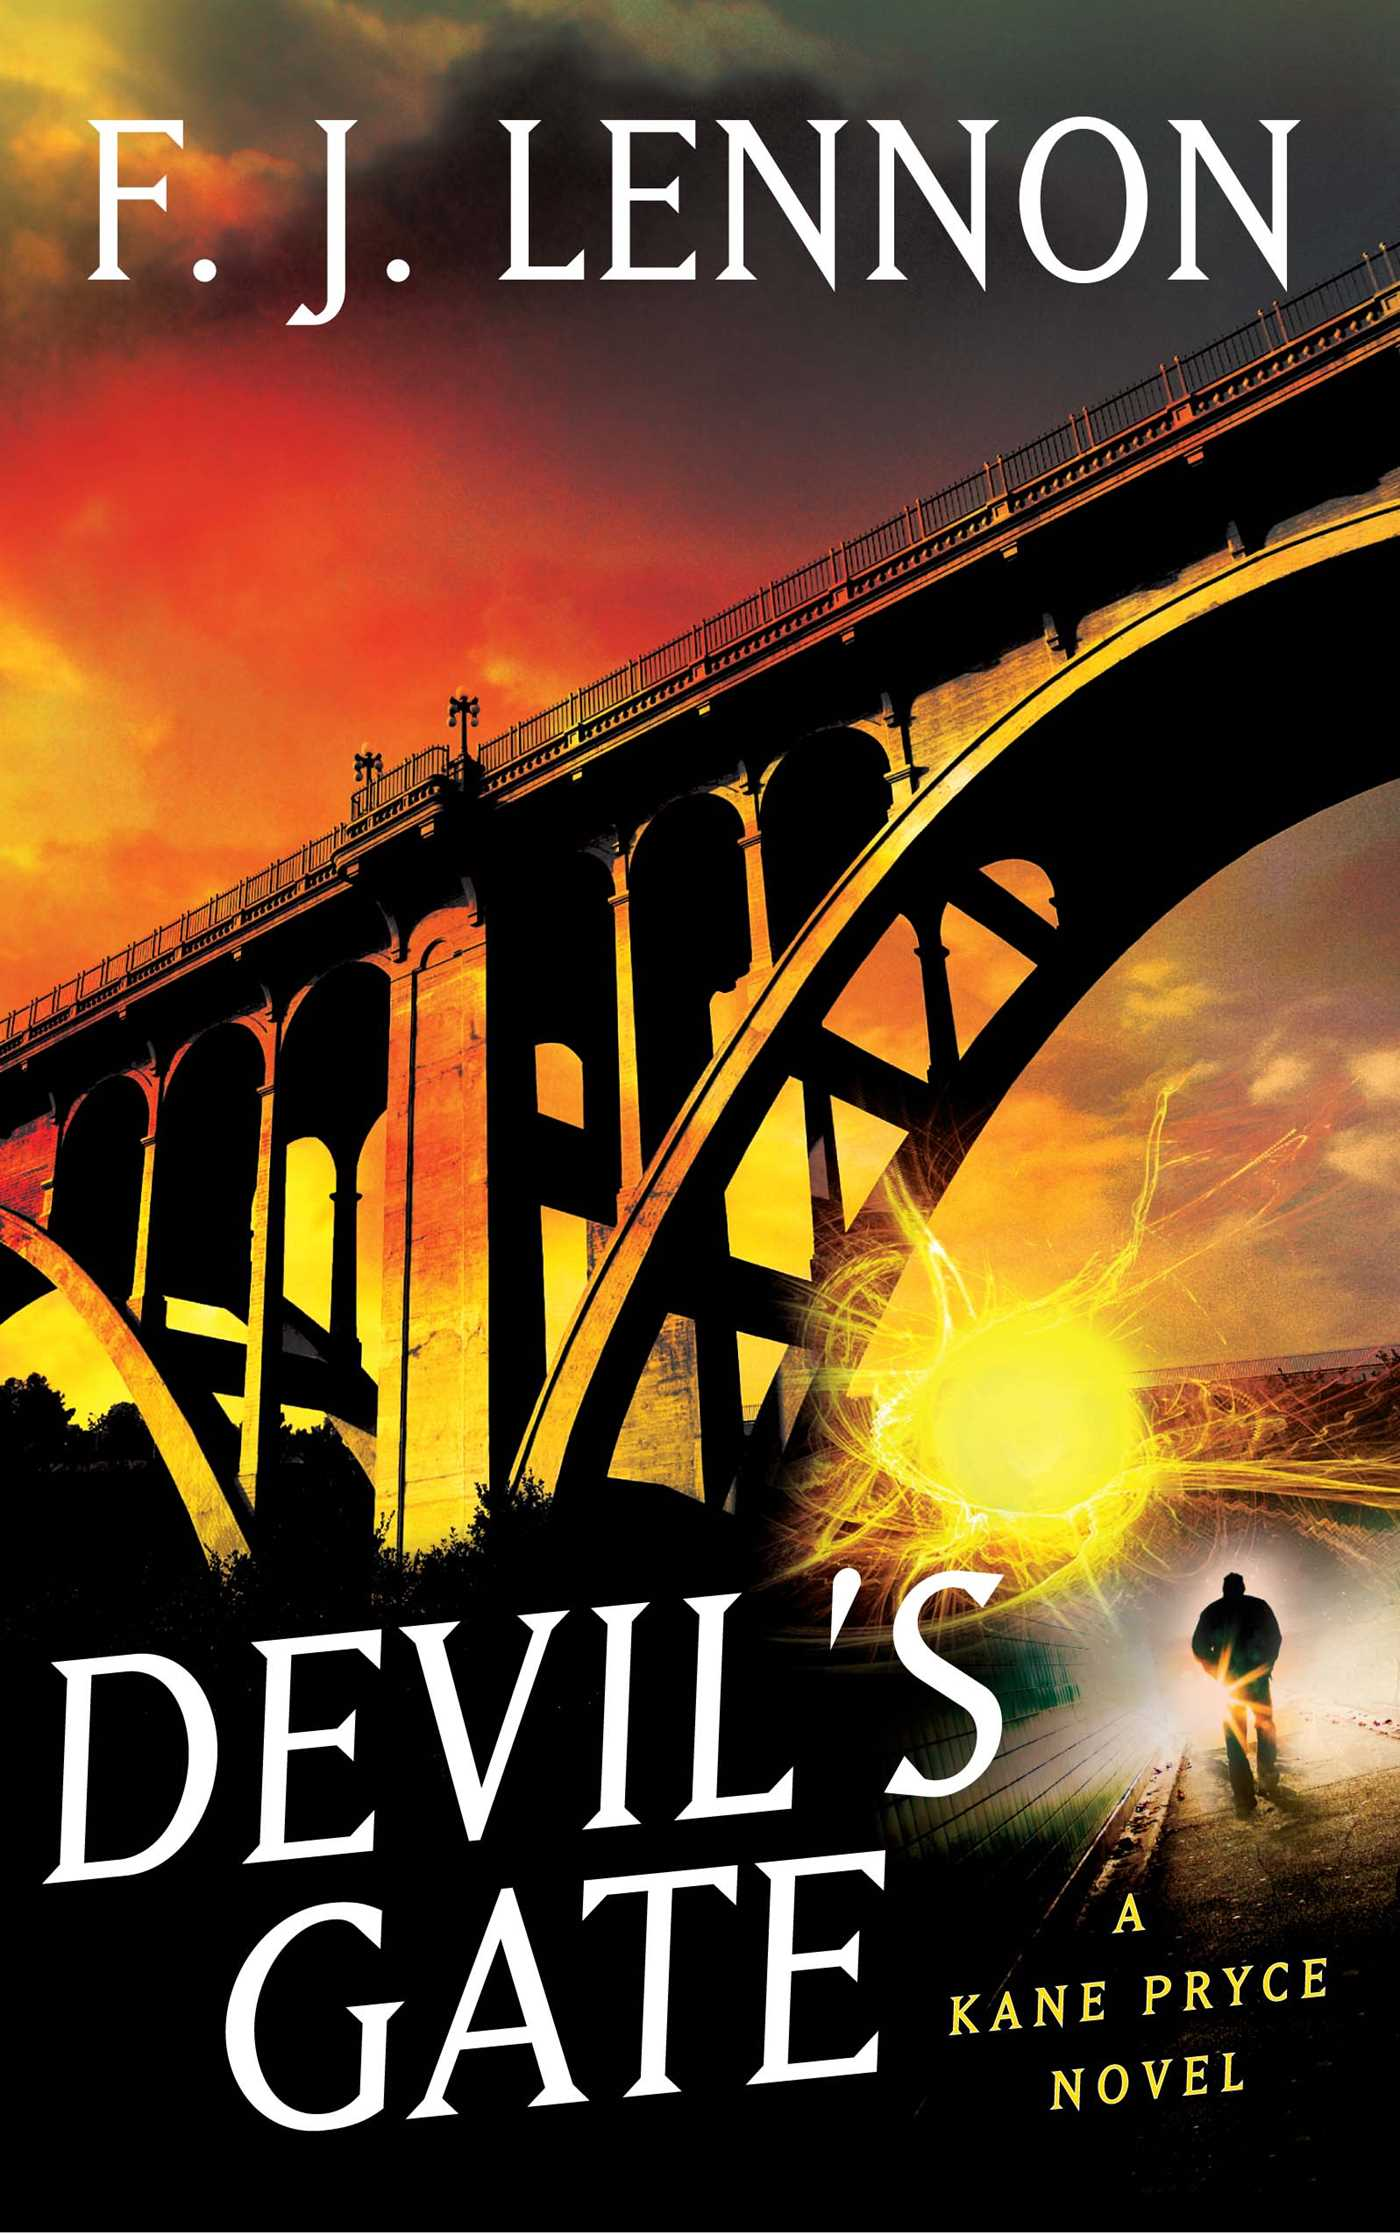 Devils gate 9781439186602 hr